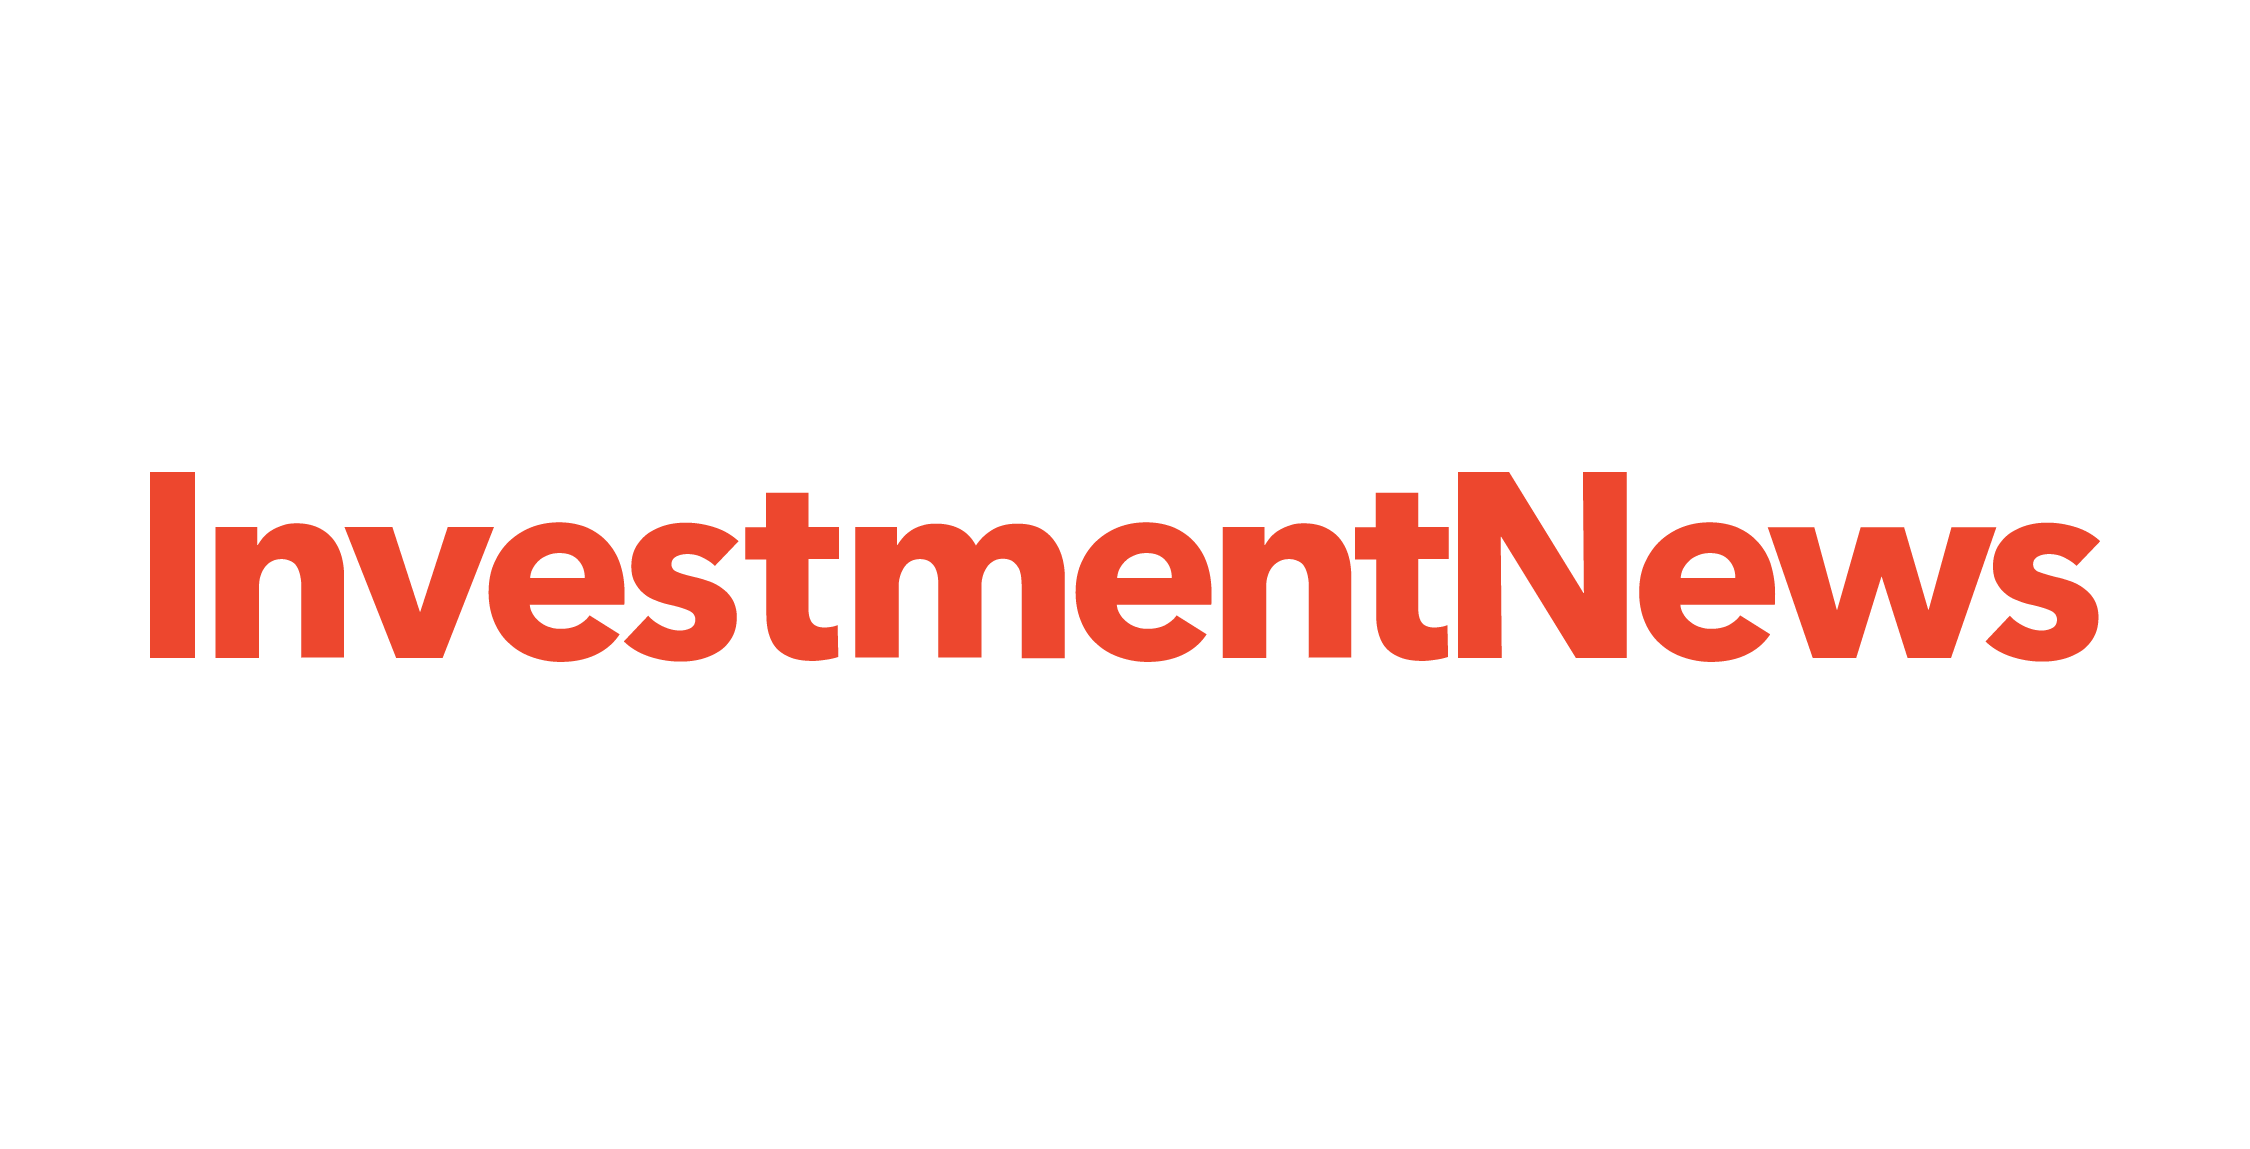 InvestmentNews: Retirement Plan Advisers Could See Increase In Business Under SECURE Act Thumbnail